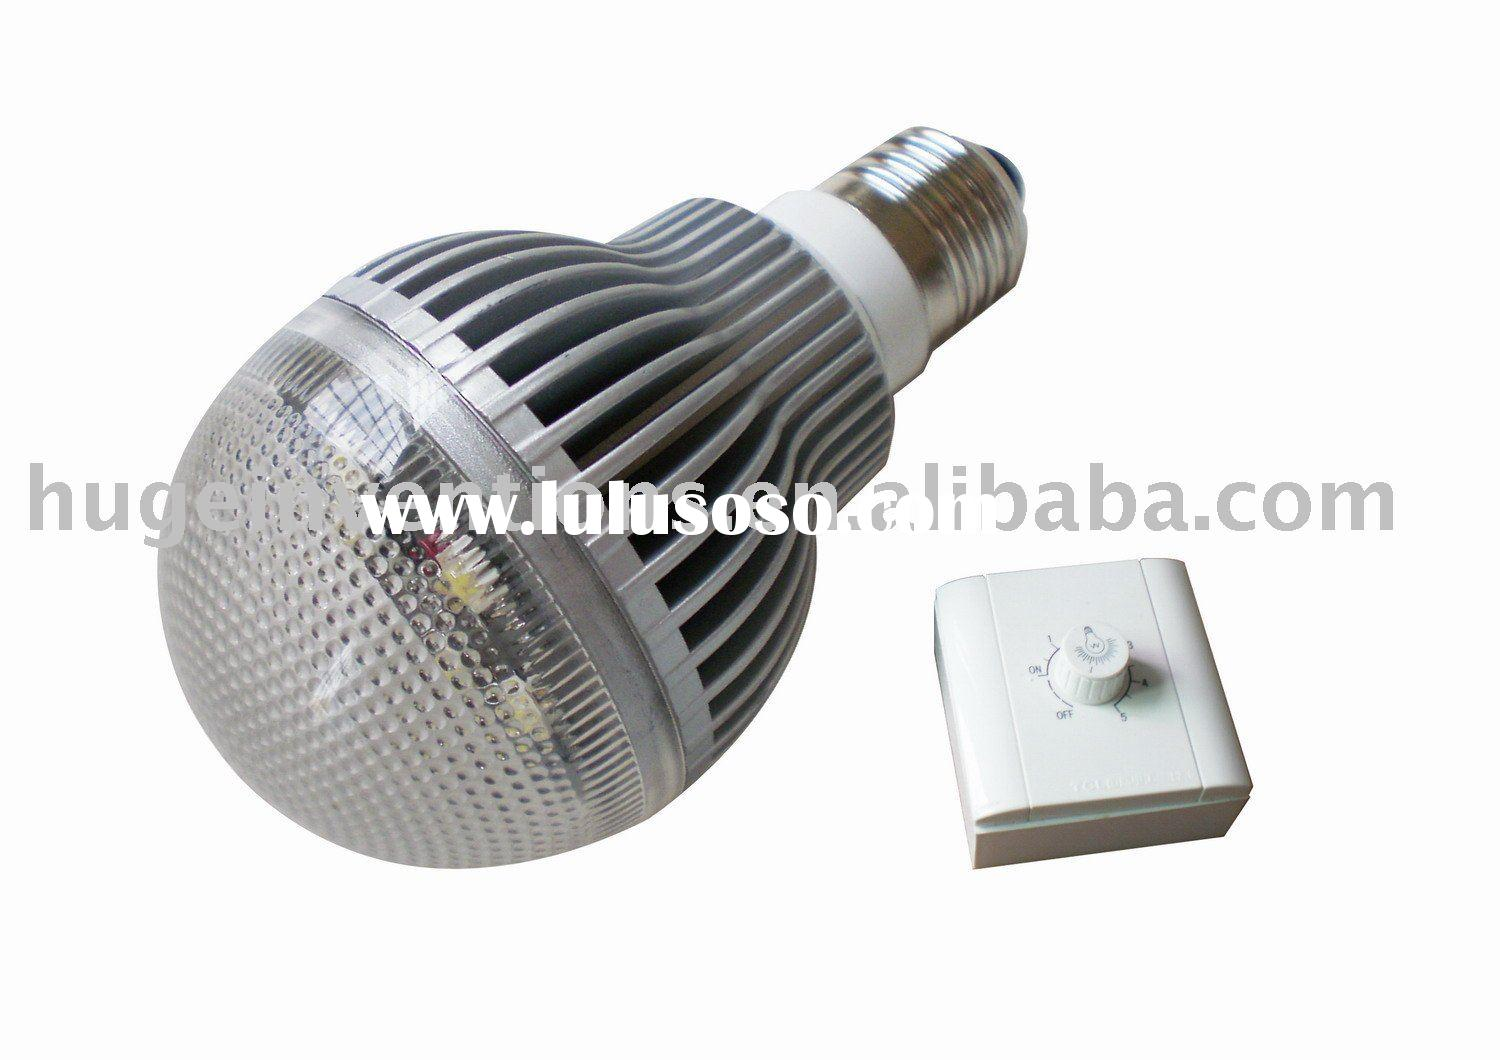 High Power Dimmable LED bulb Osram 5W